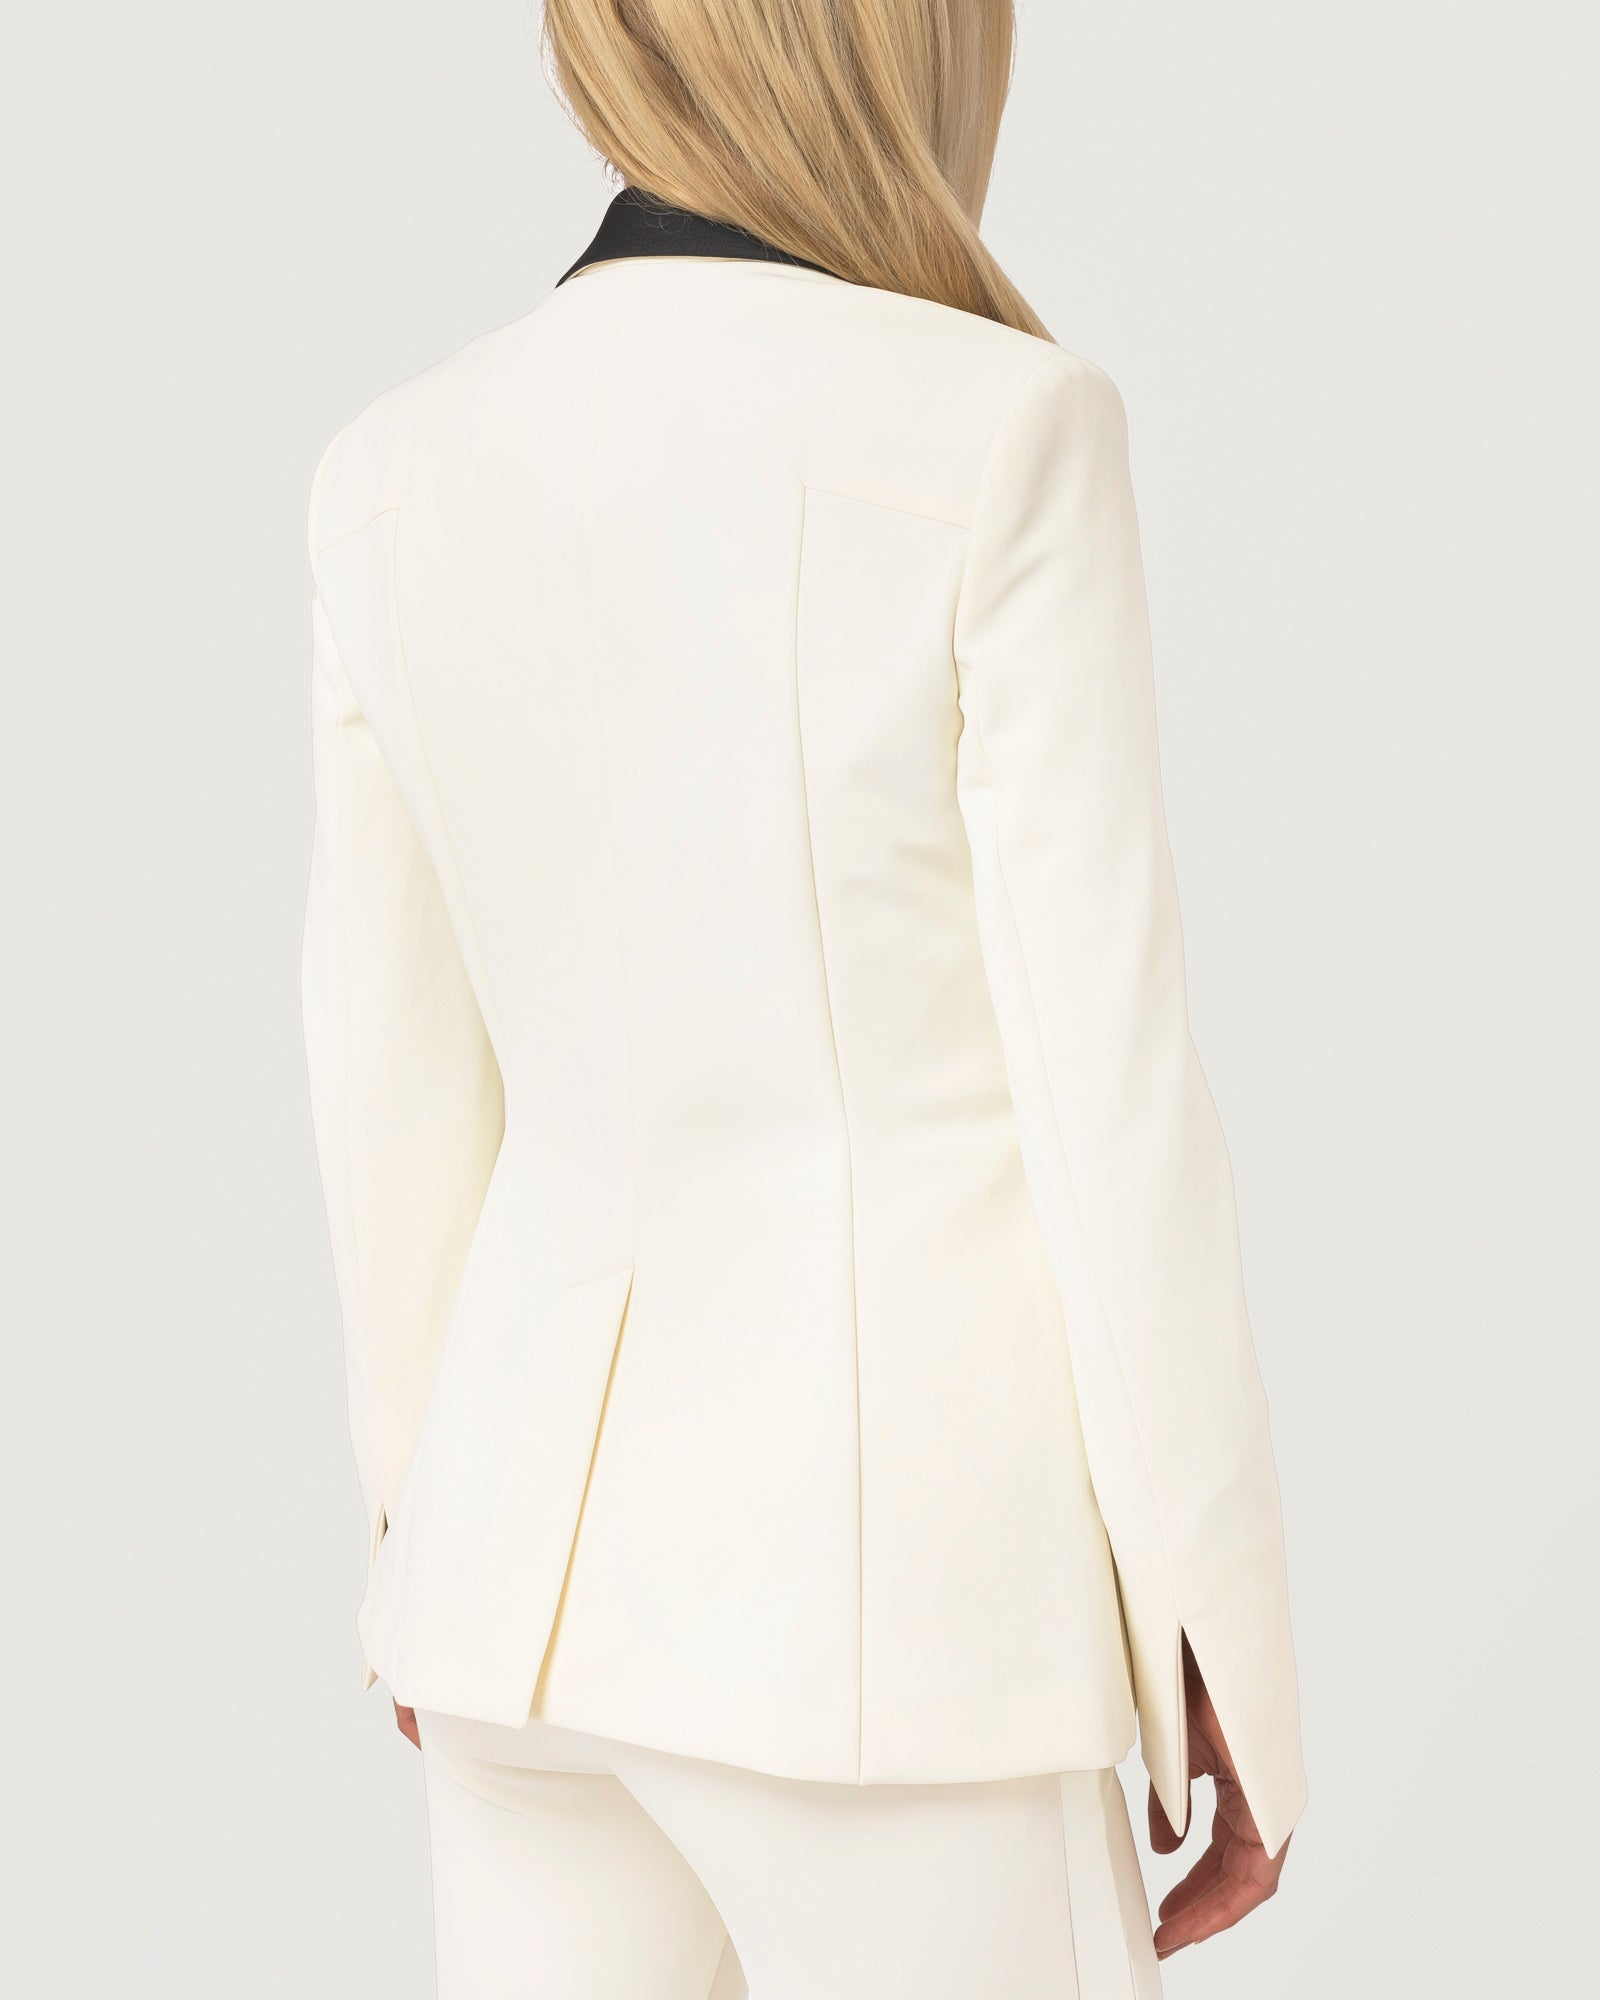 Tux Trail Blazer Ivory - Limited Edition